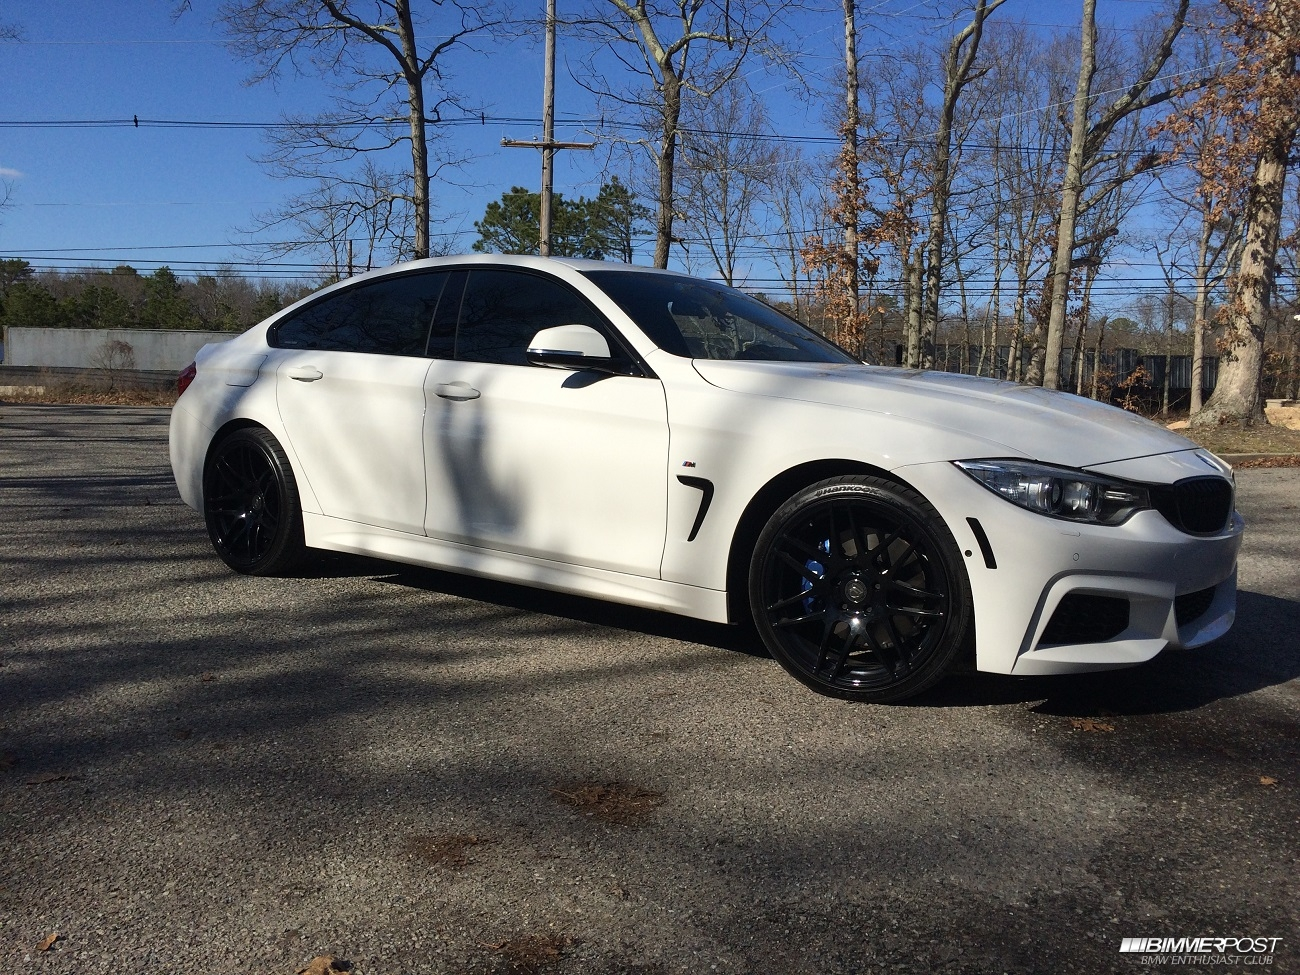 R C S M3 S 2015 Bmw 435i Gran Coupe Bimmerpost Garage